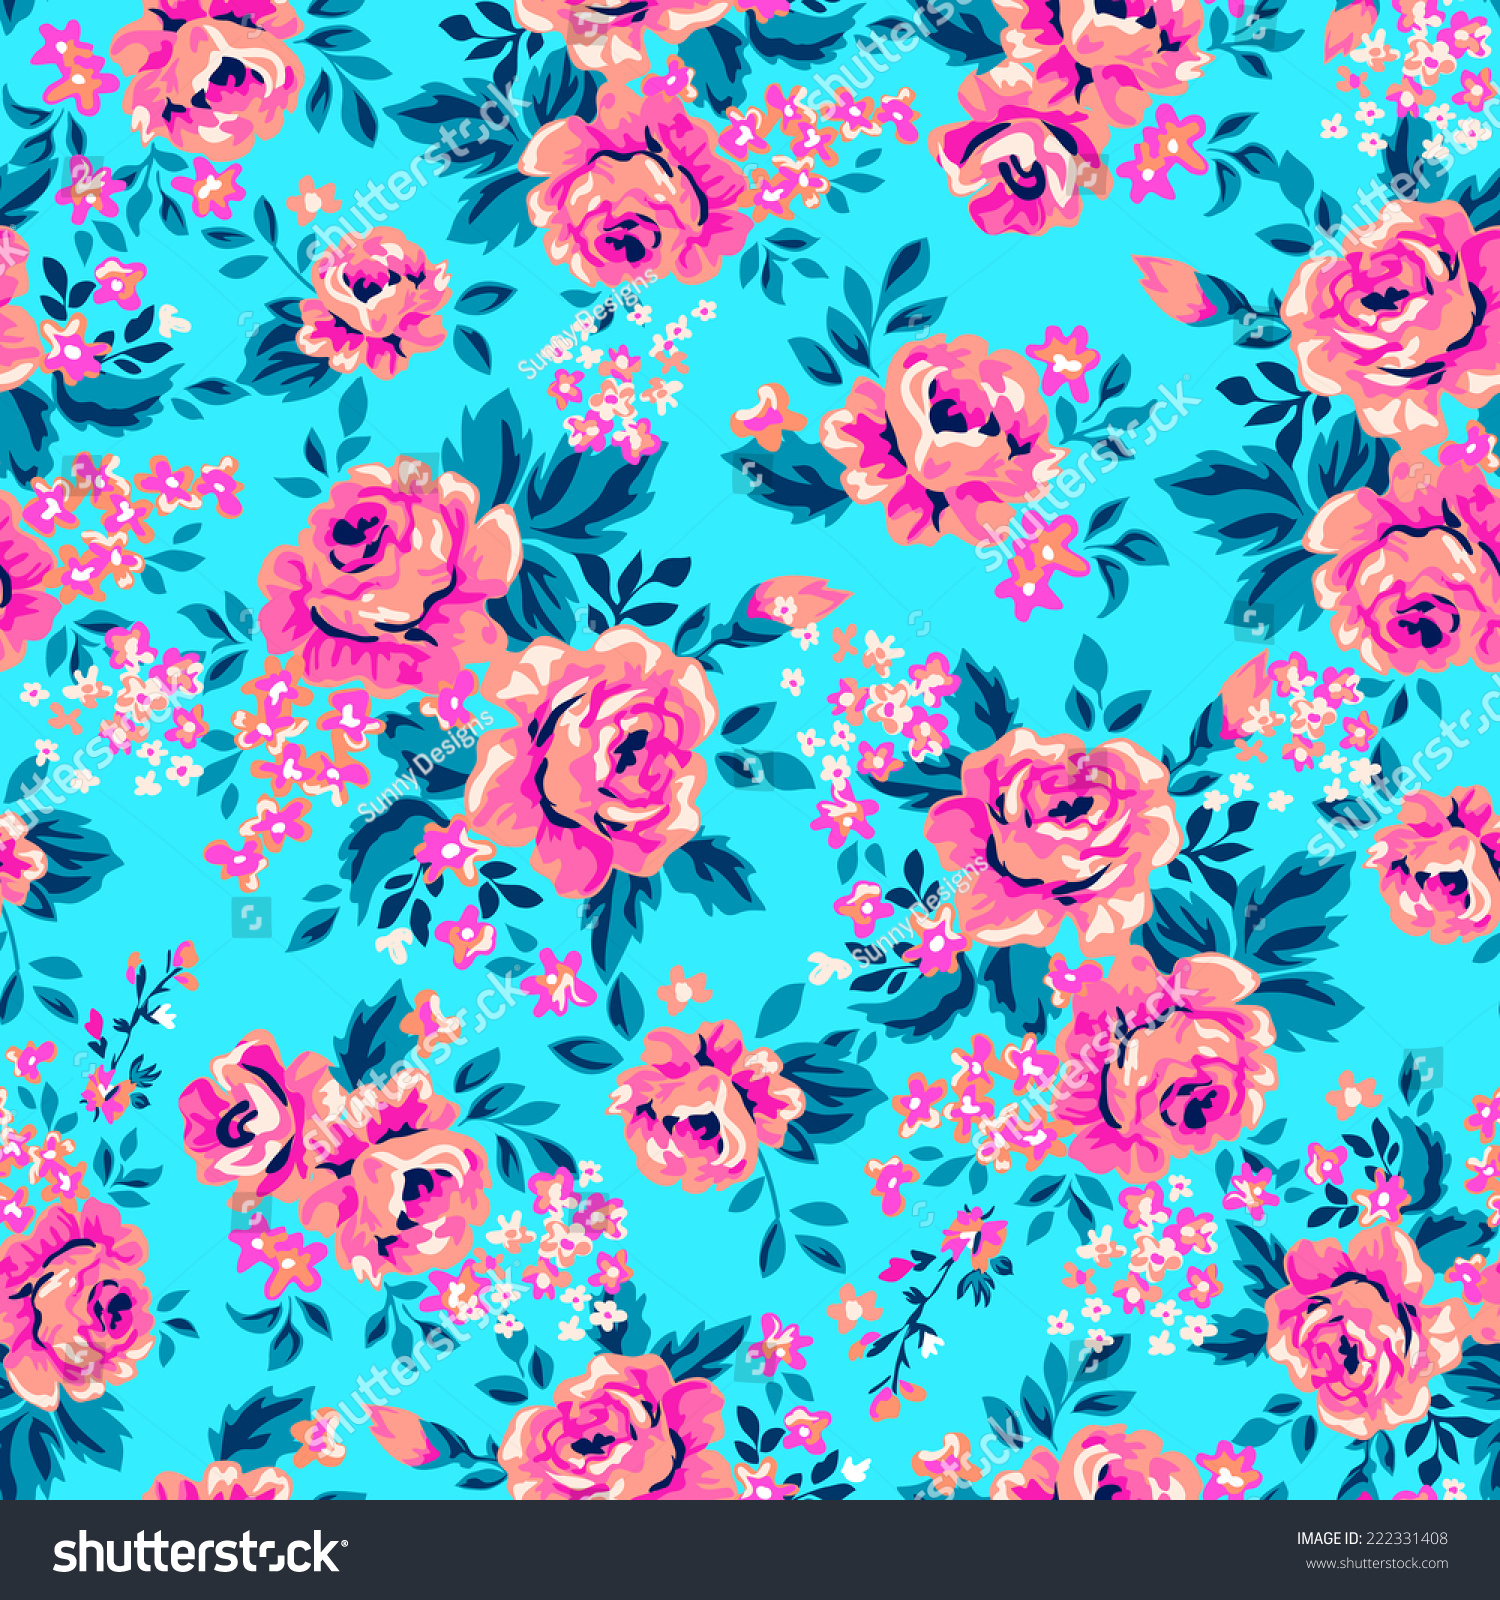 Cute Zig Zag Wallpapers Bright Roses On Blue Seamless Background Stock Vector